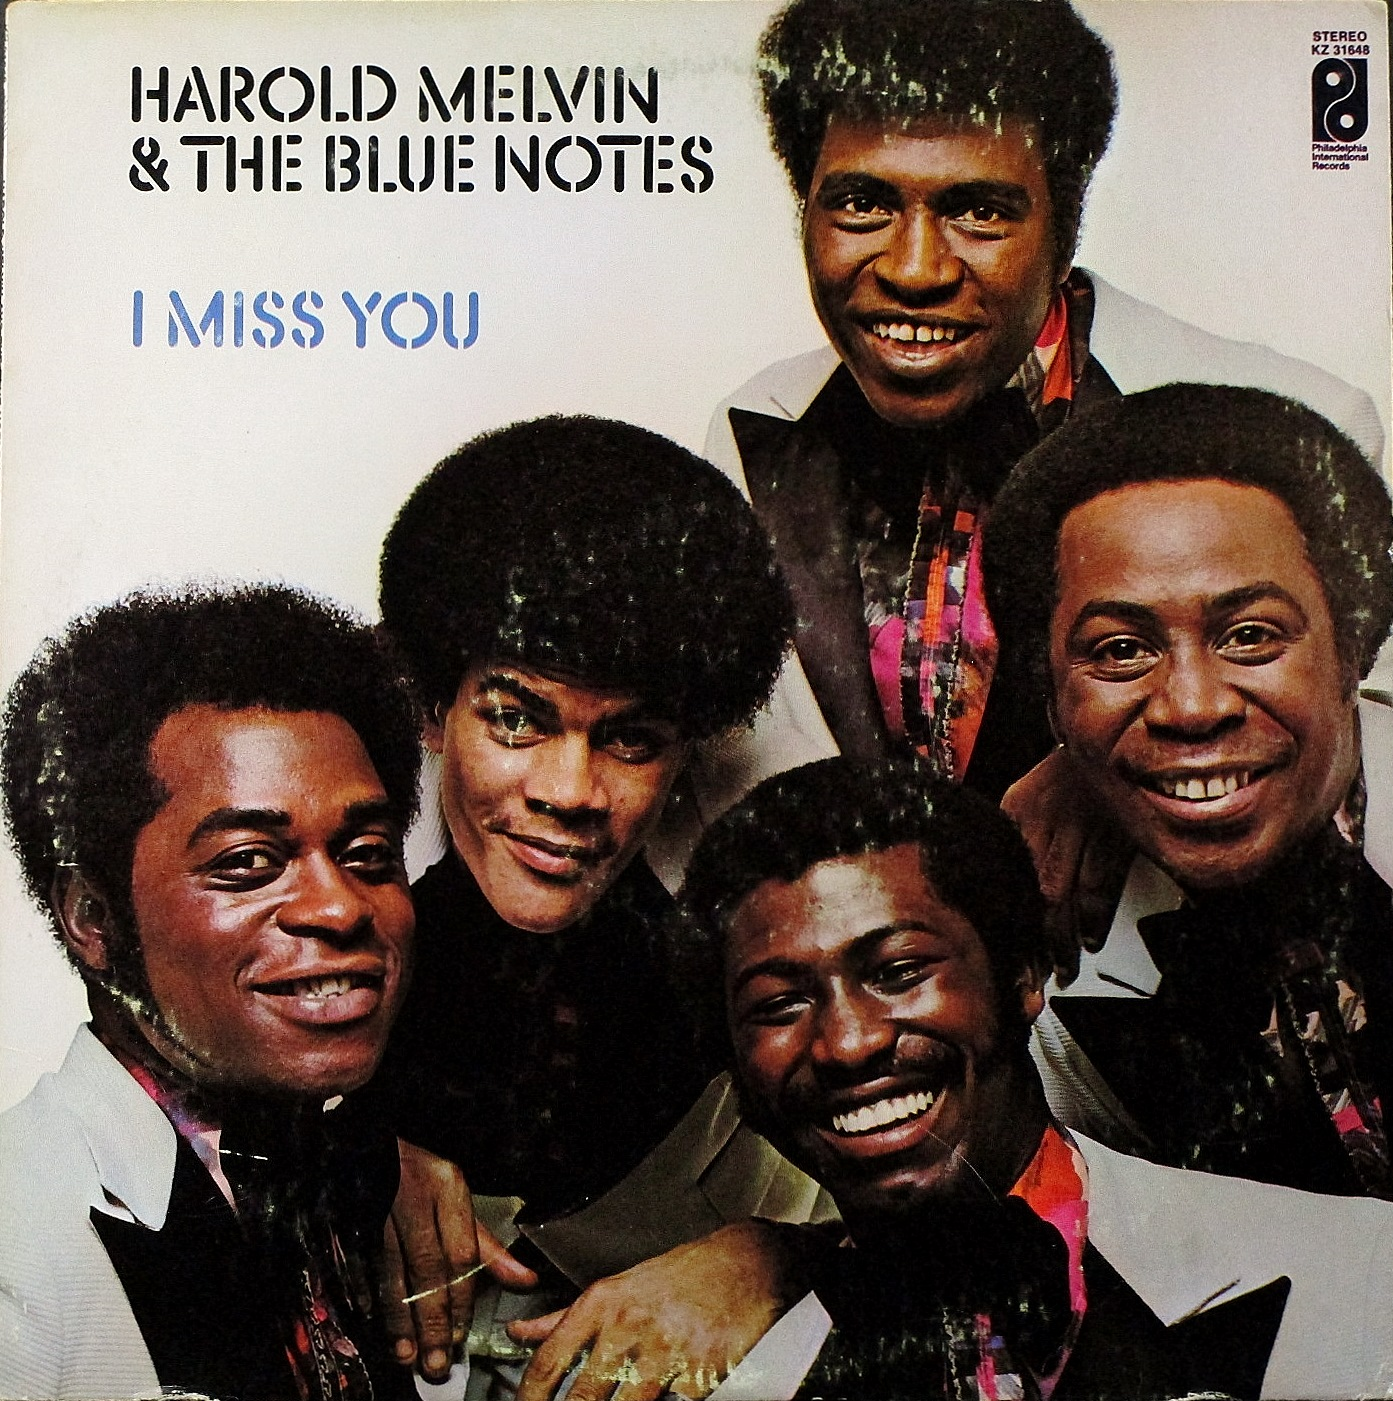 Harold Melvin & The Blue Notes ハロルド・メルヴィン・アンド・ブルーノーツ / Miss You